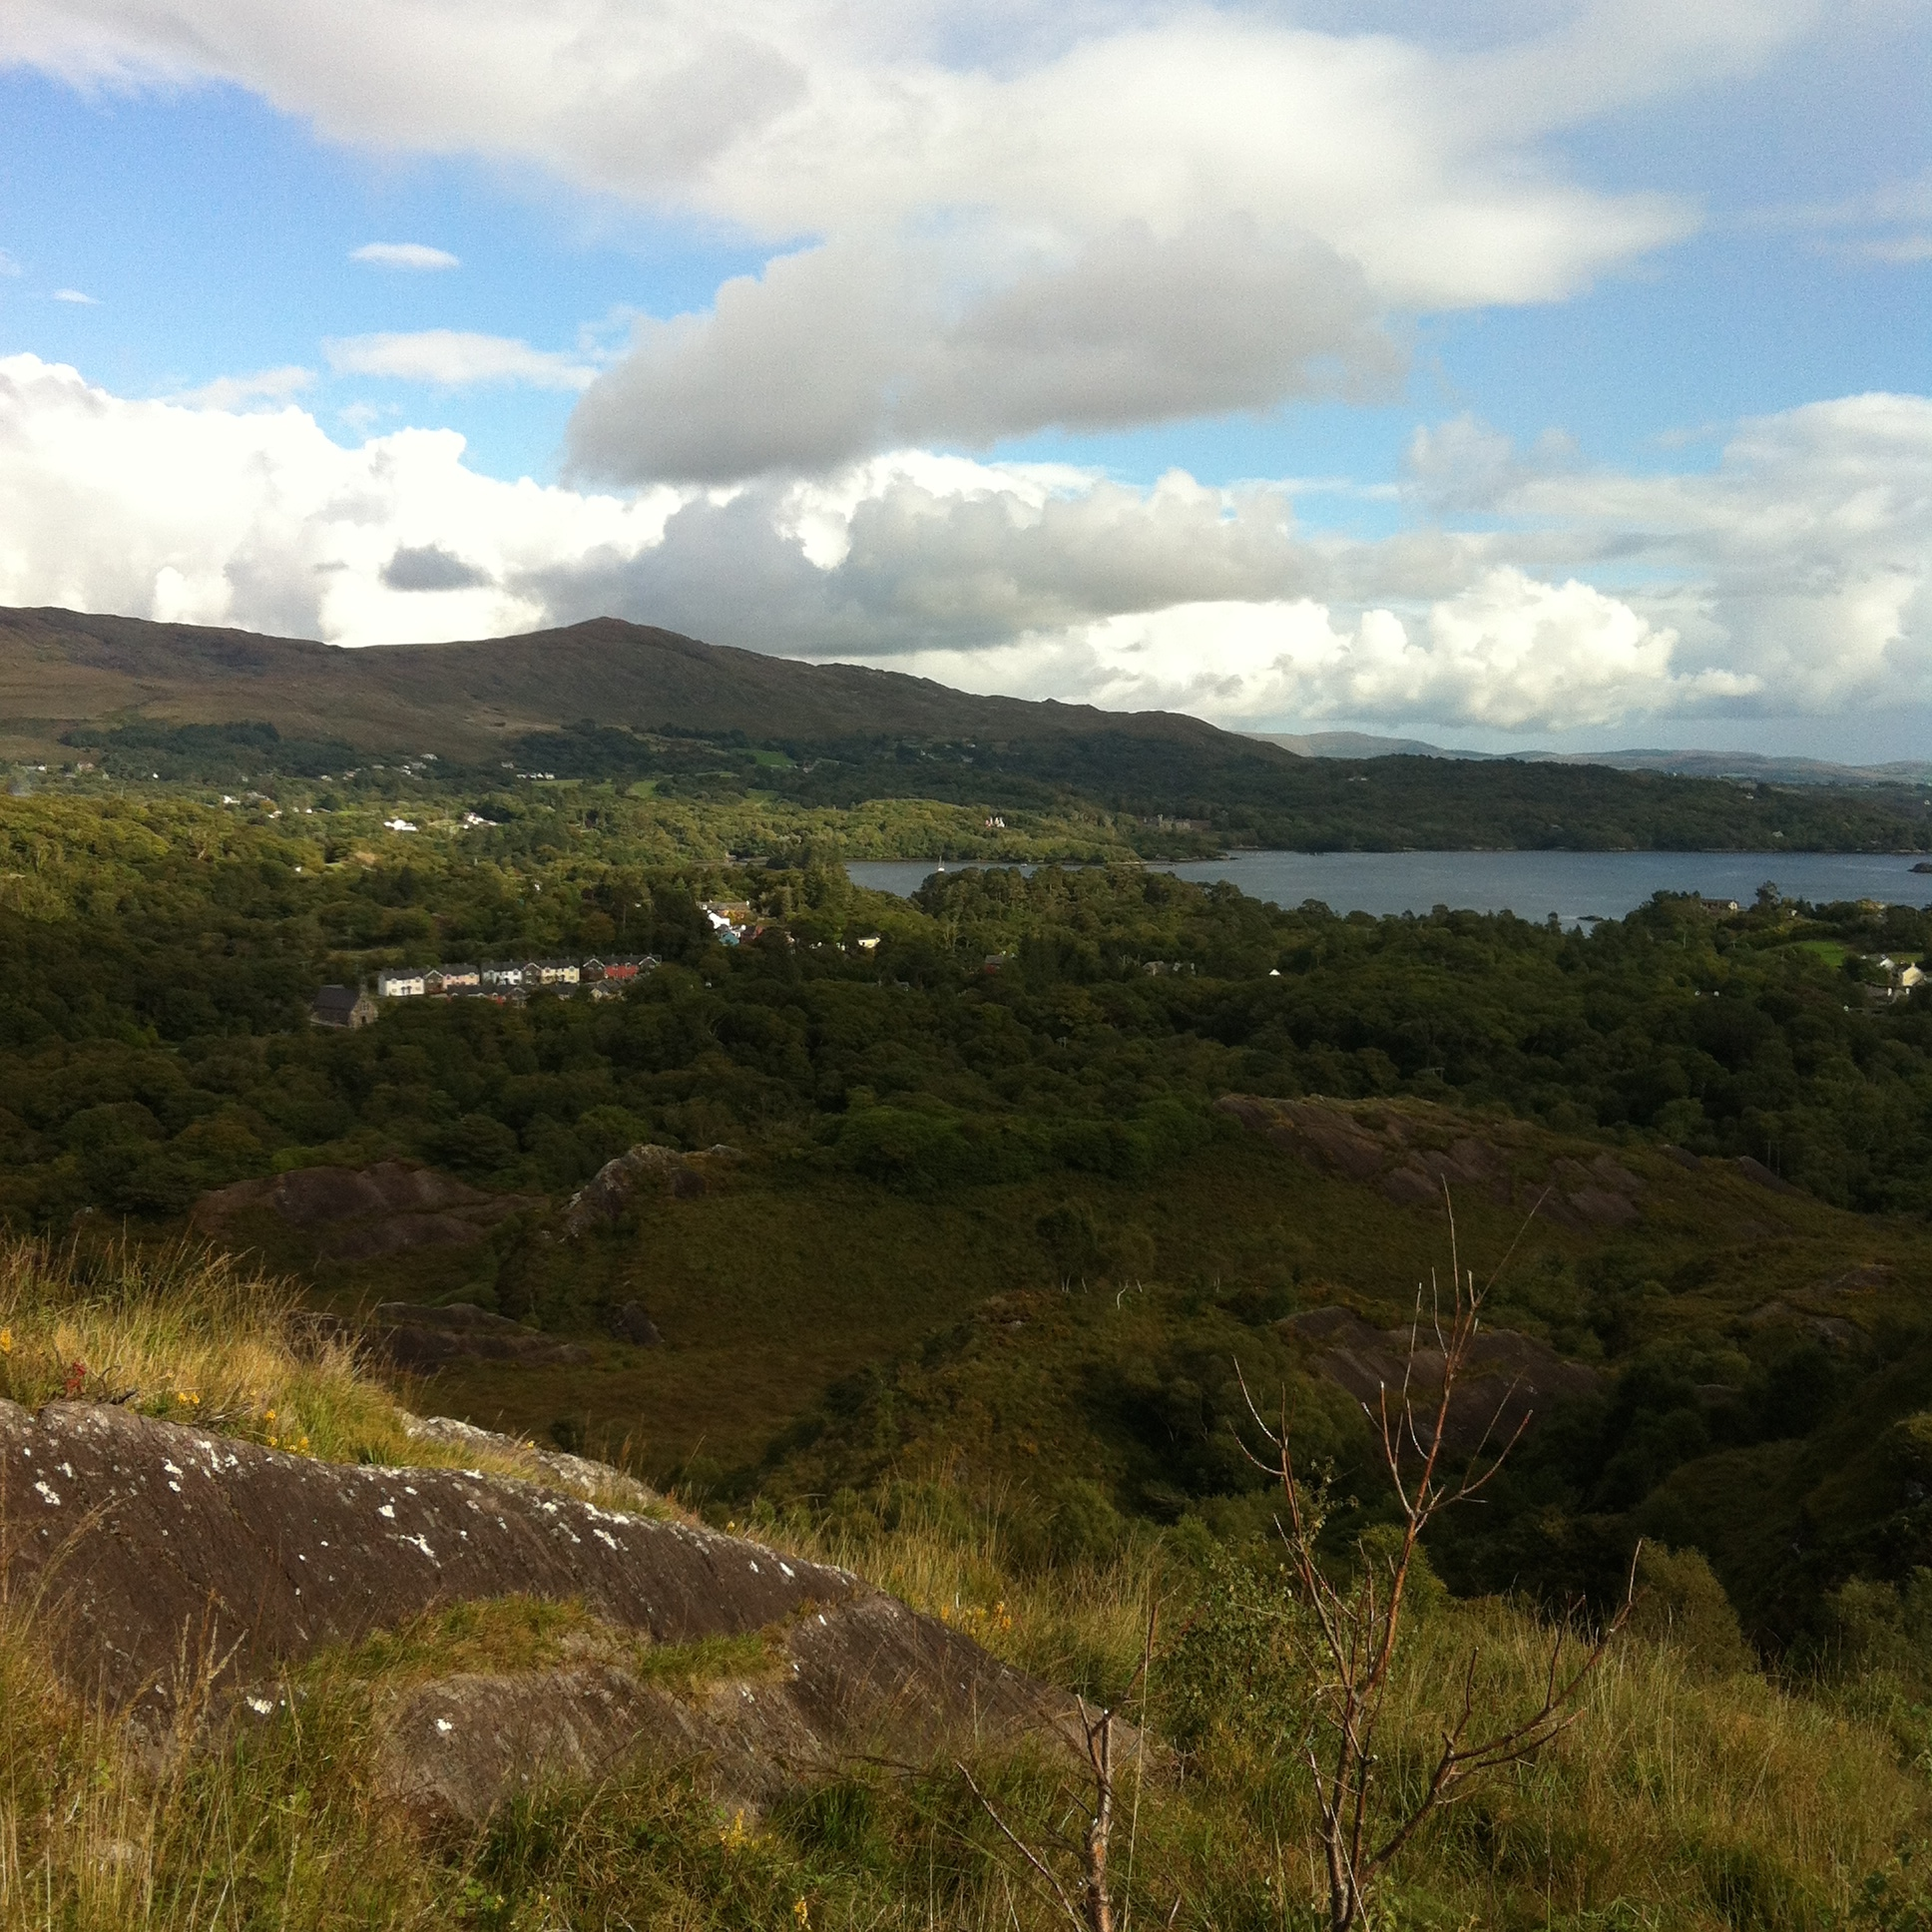 Another view of Glengarriff Harbour